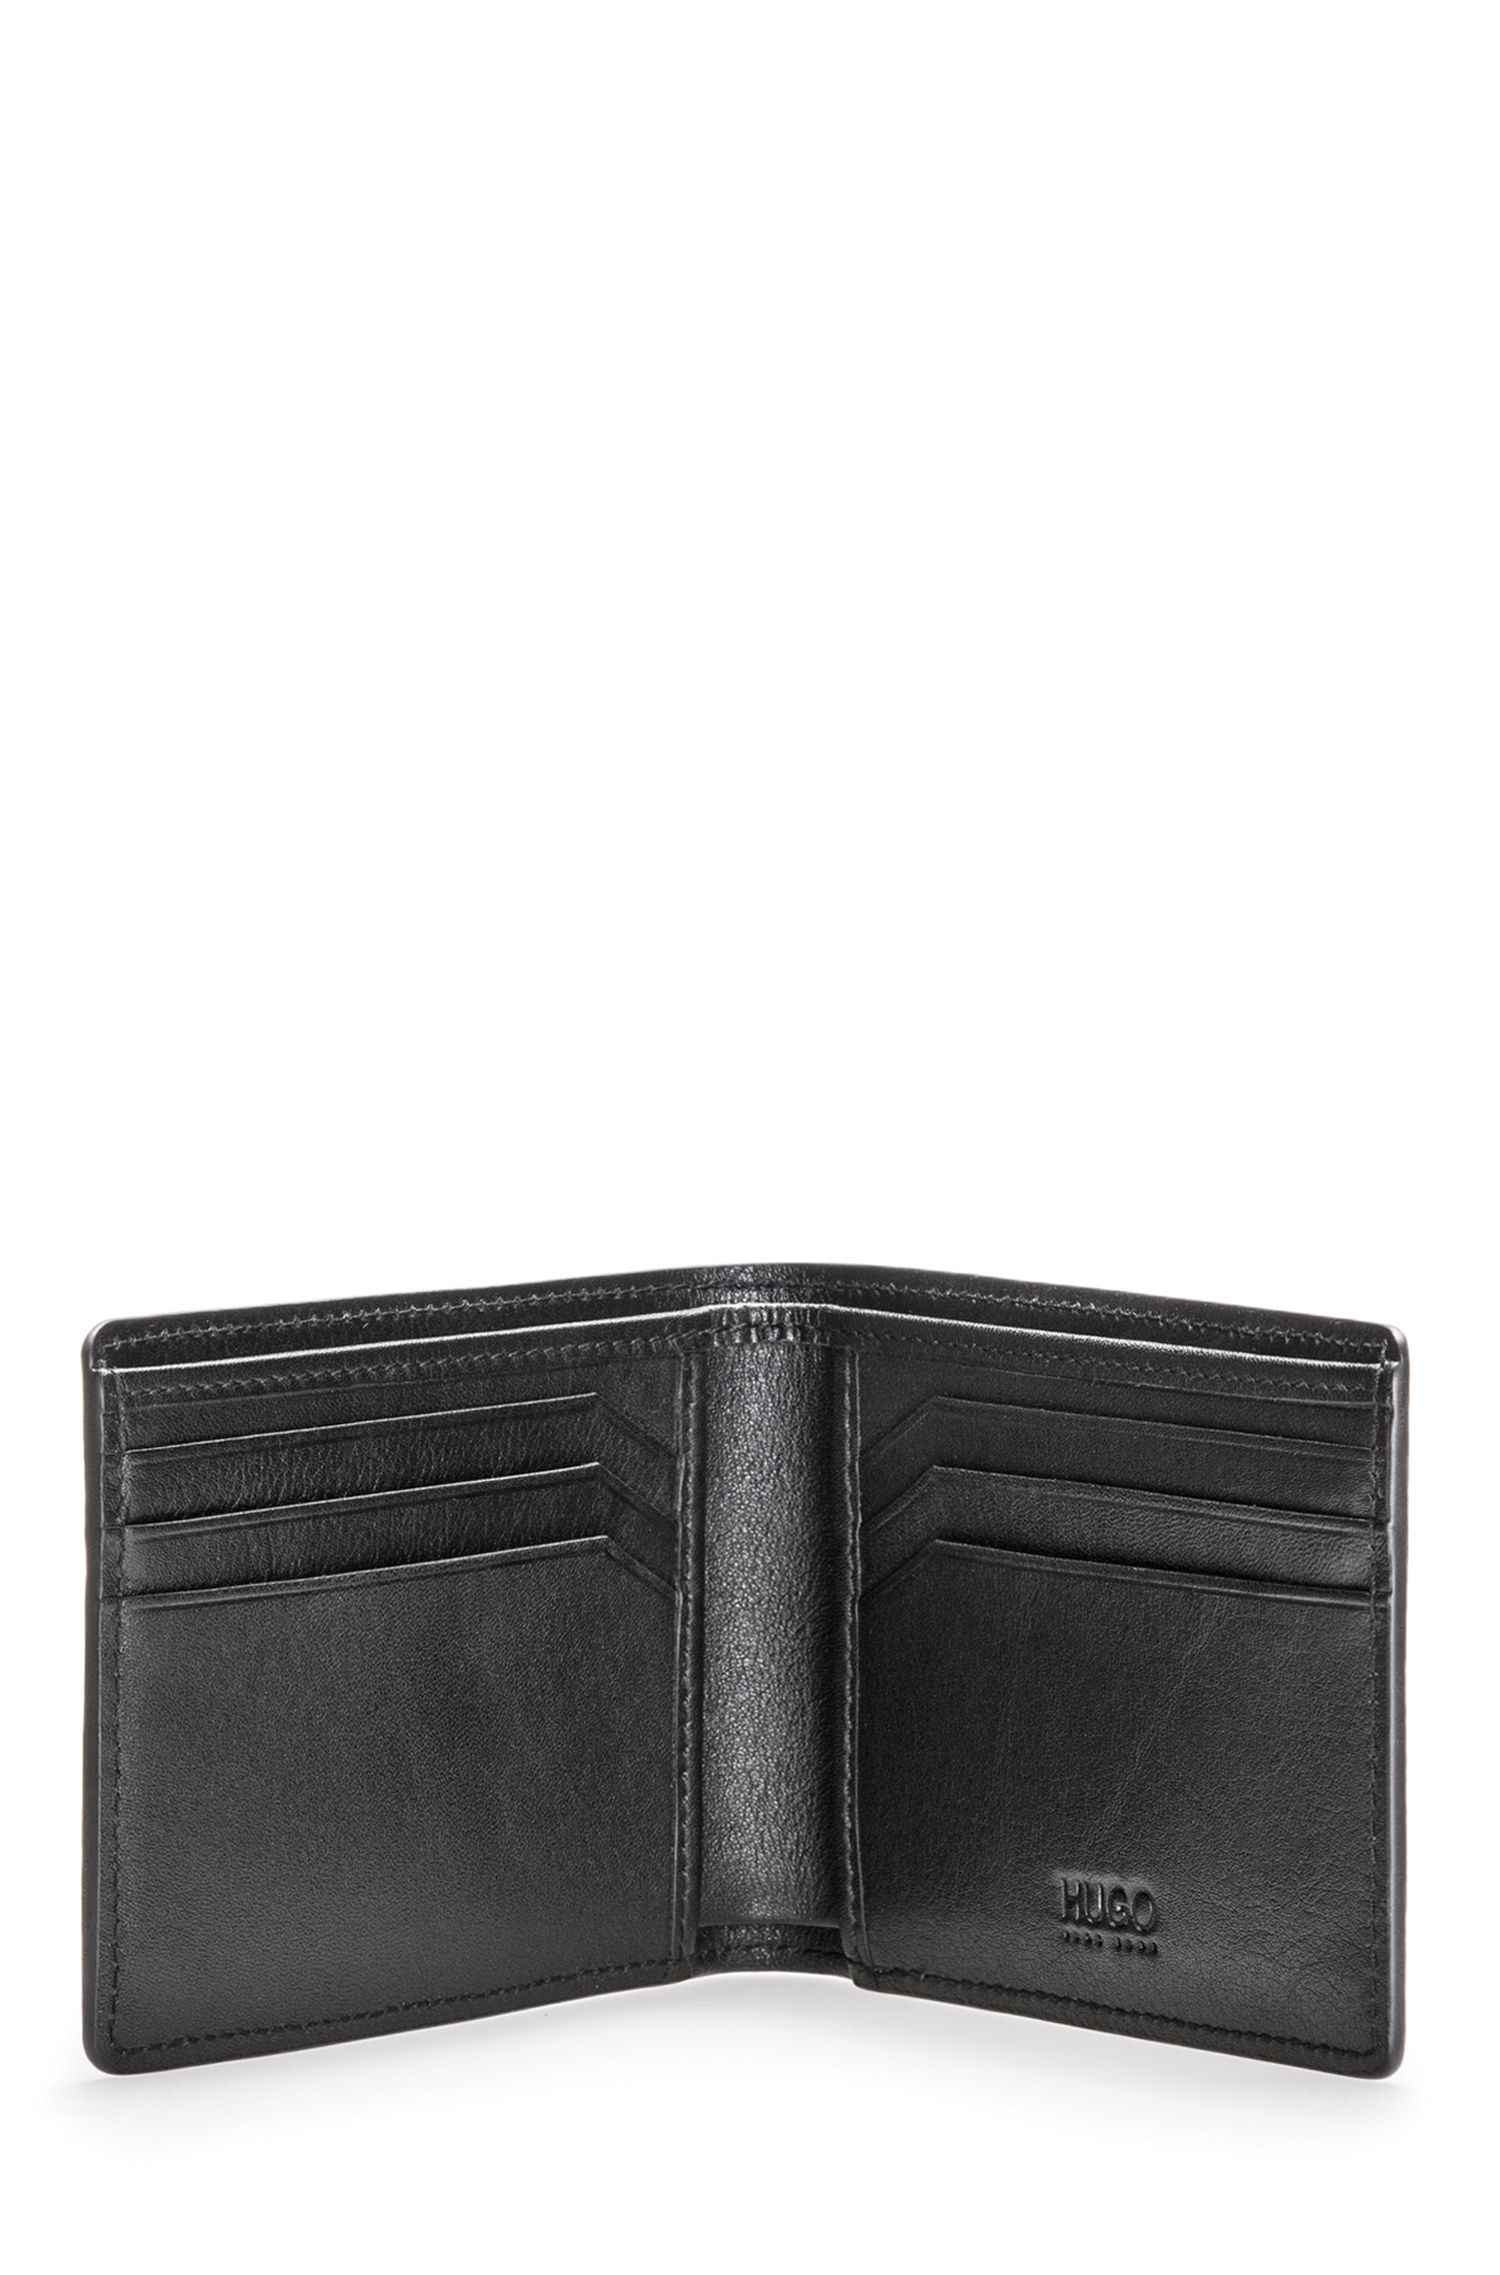 Leather Billfold Wallet | Tribute P, Black